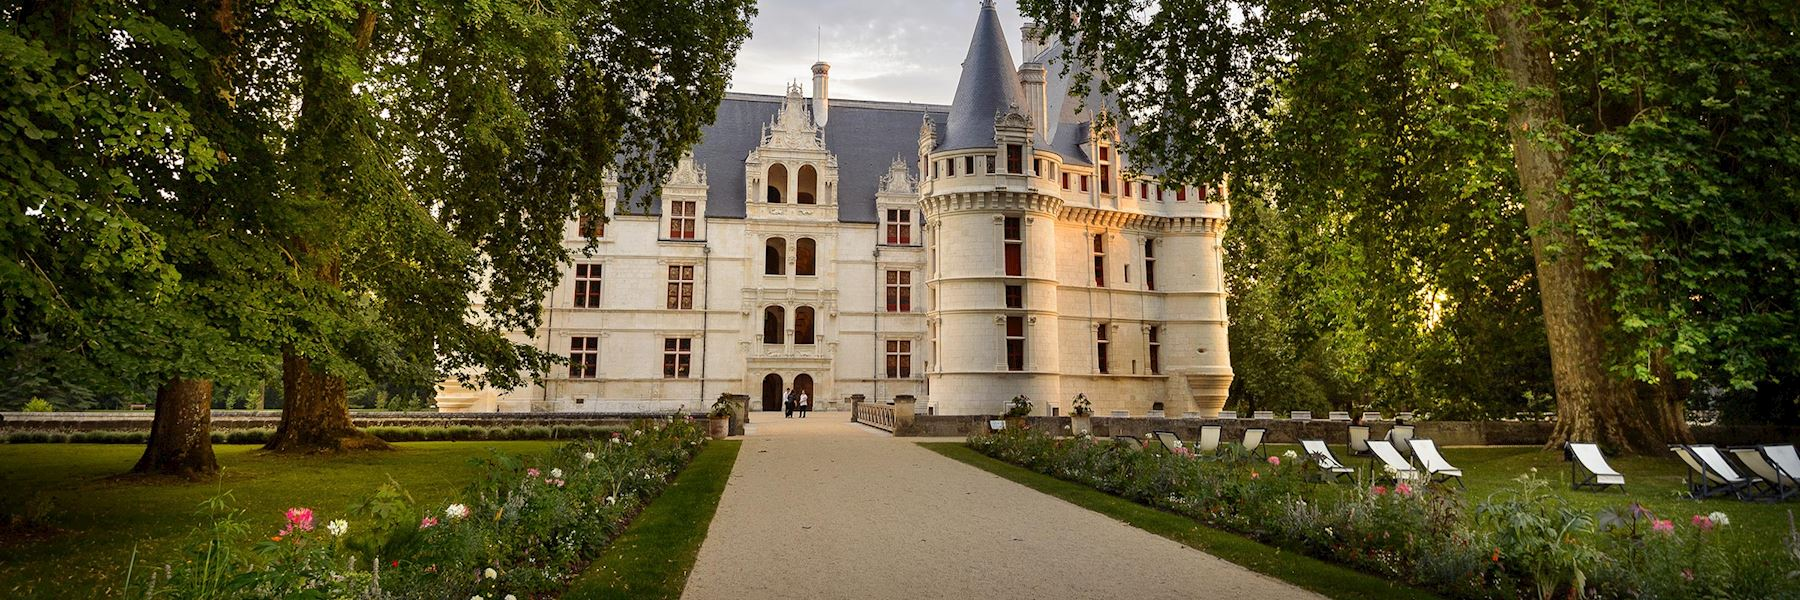 Tailor-made vacations to Château d\'Azay-le-Rideau | Audley Travel